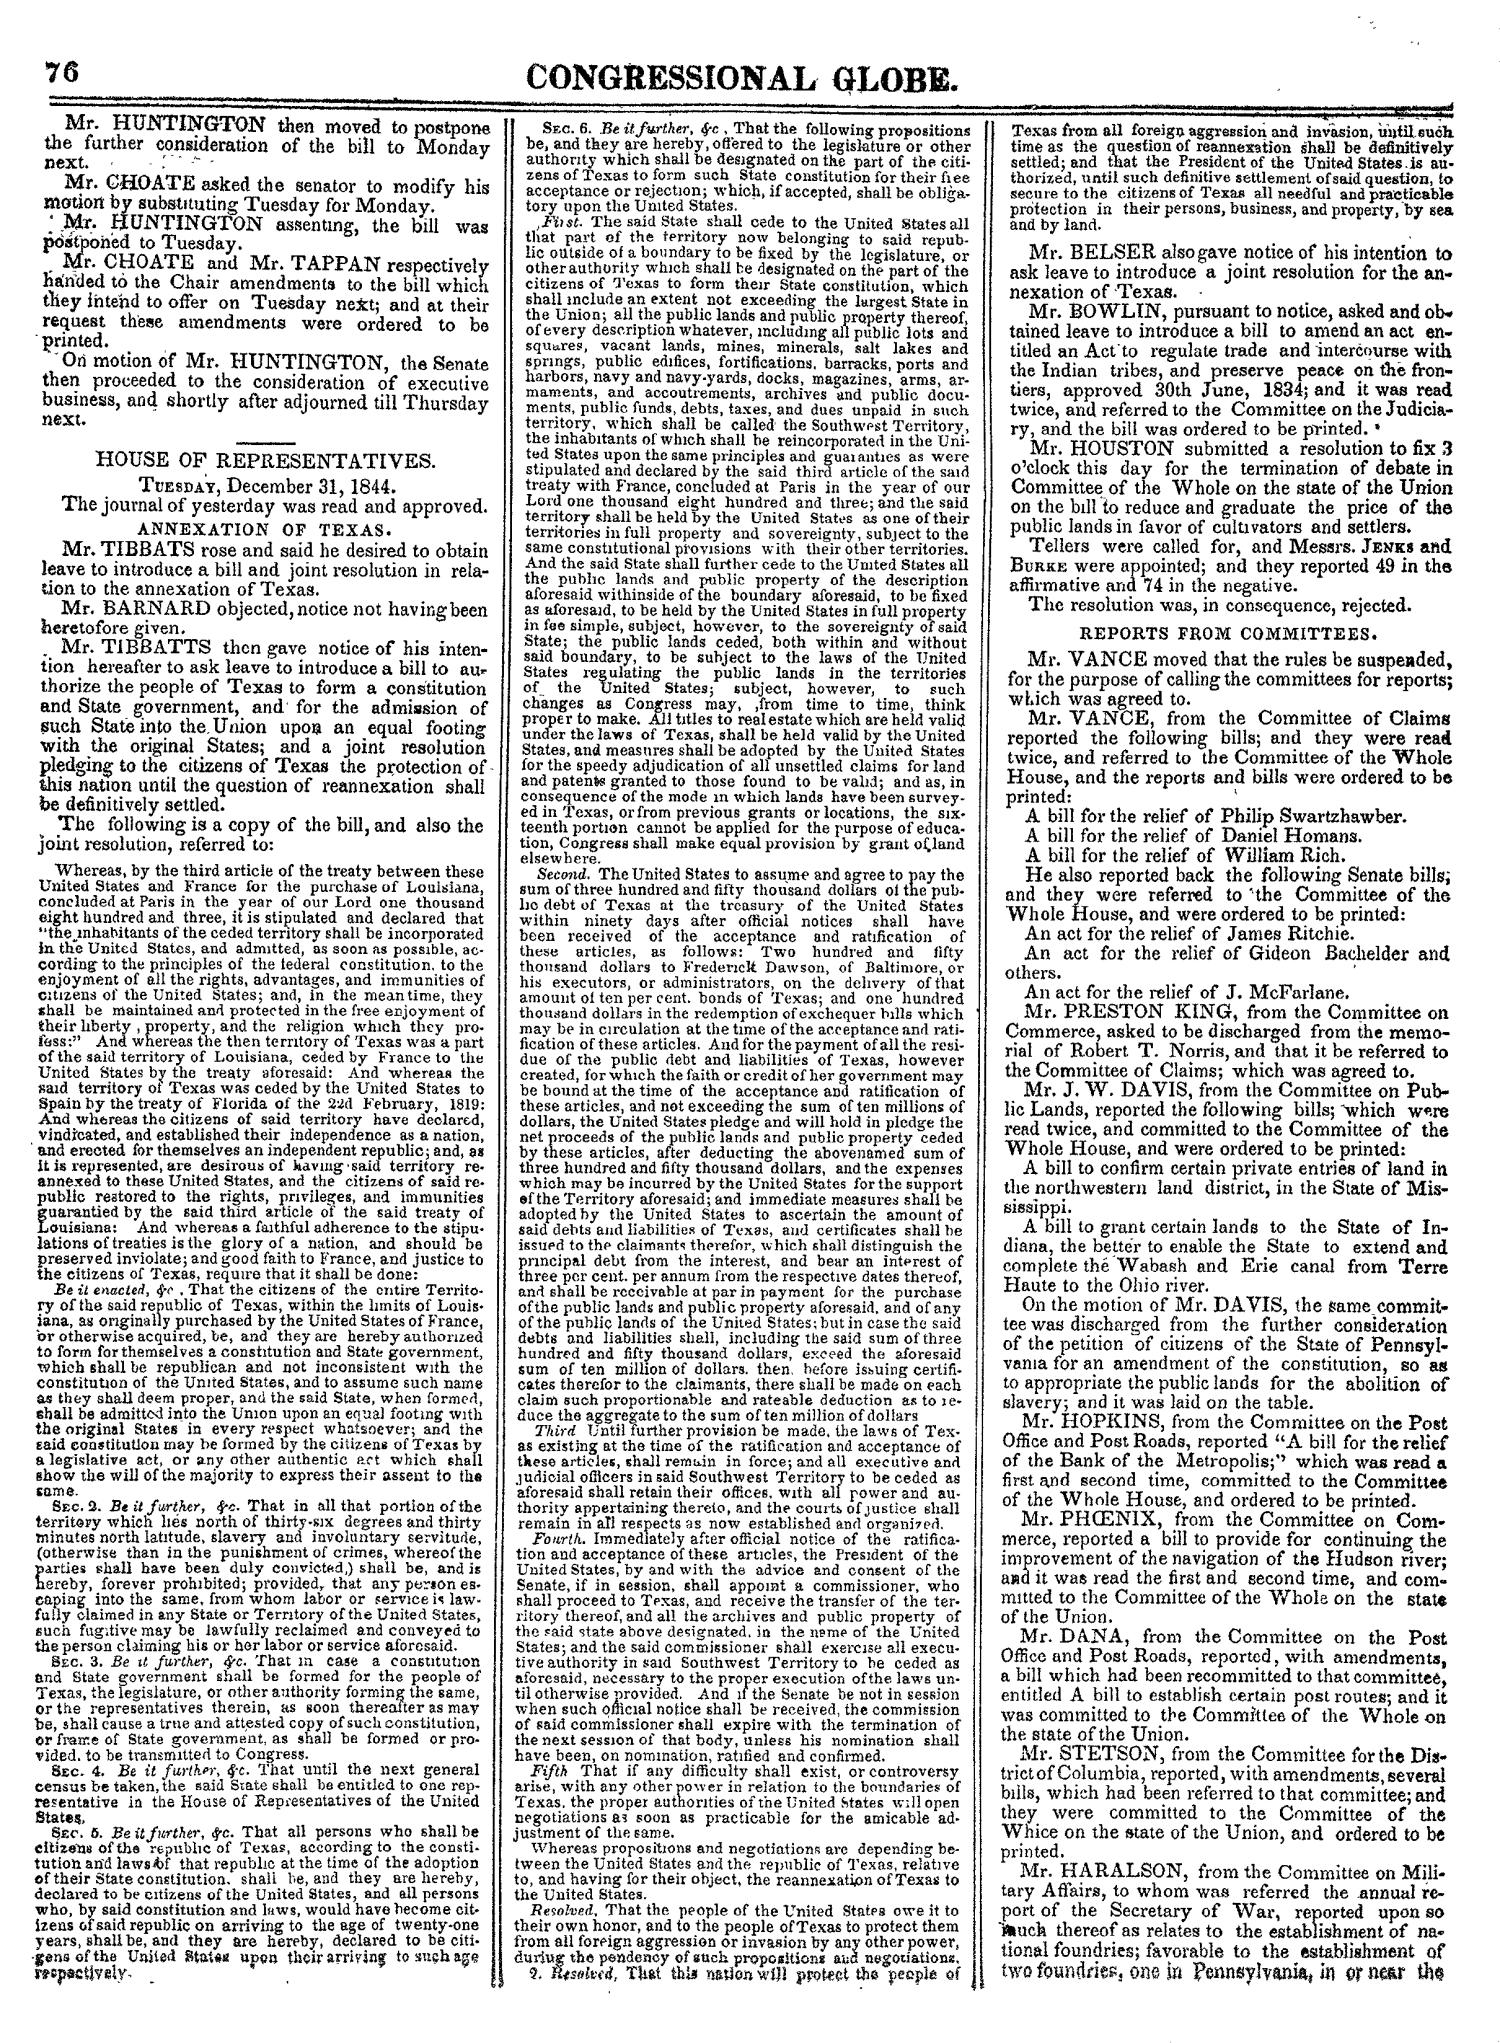 The Congressional Globe, Volume 14: Twenty-Eighth Congress, Second Session                                                                                                      76